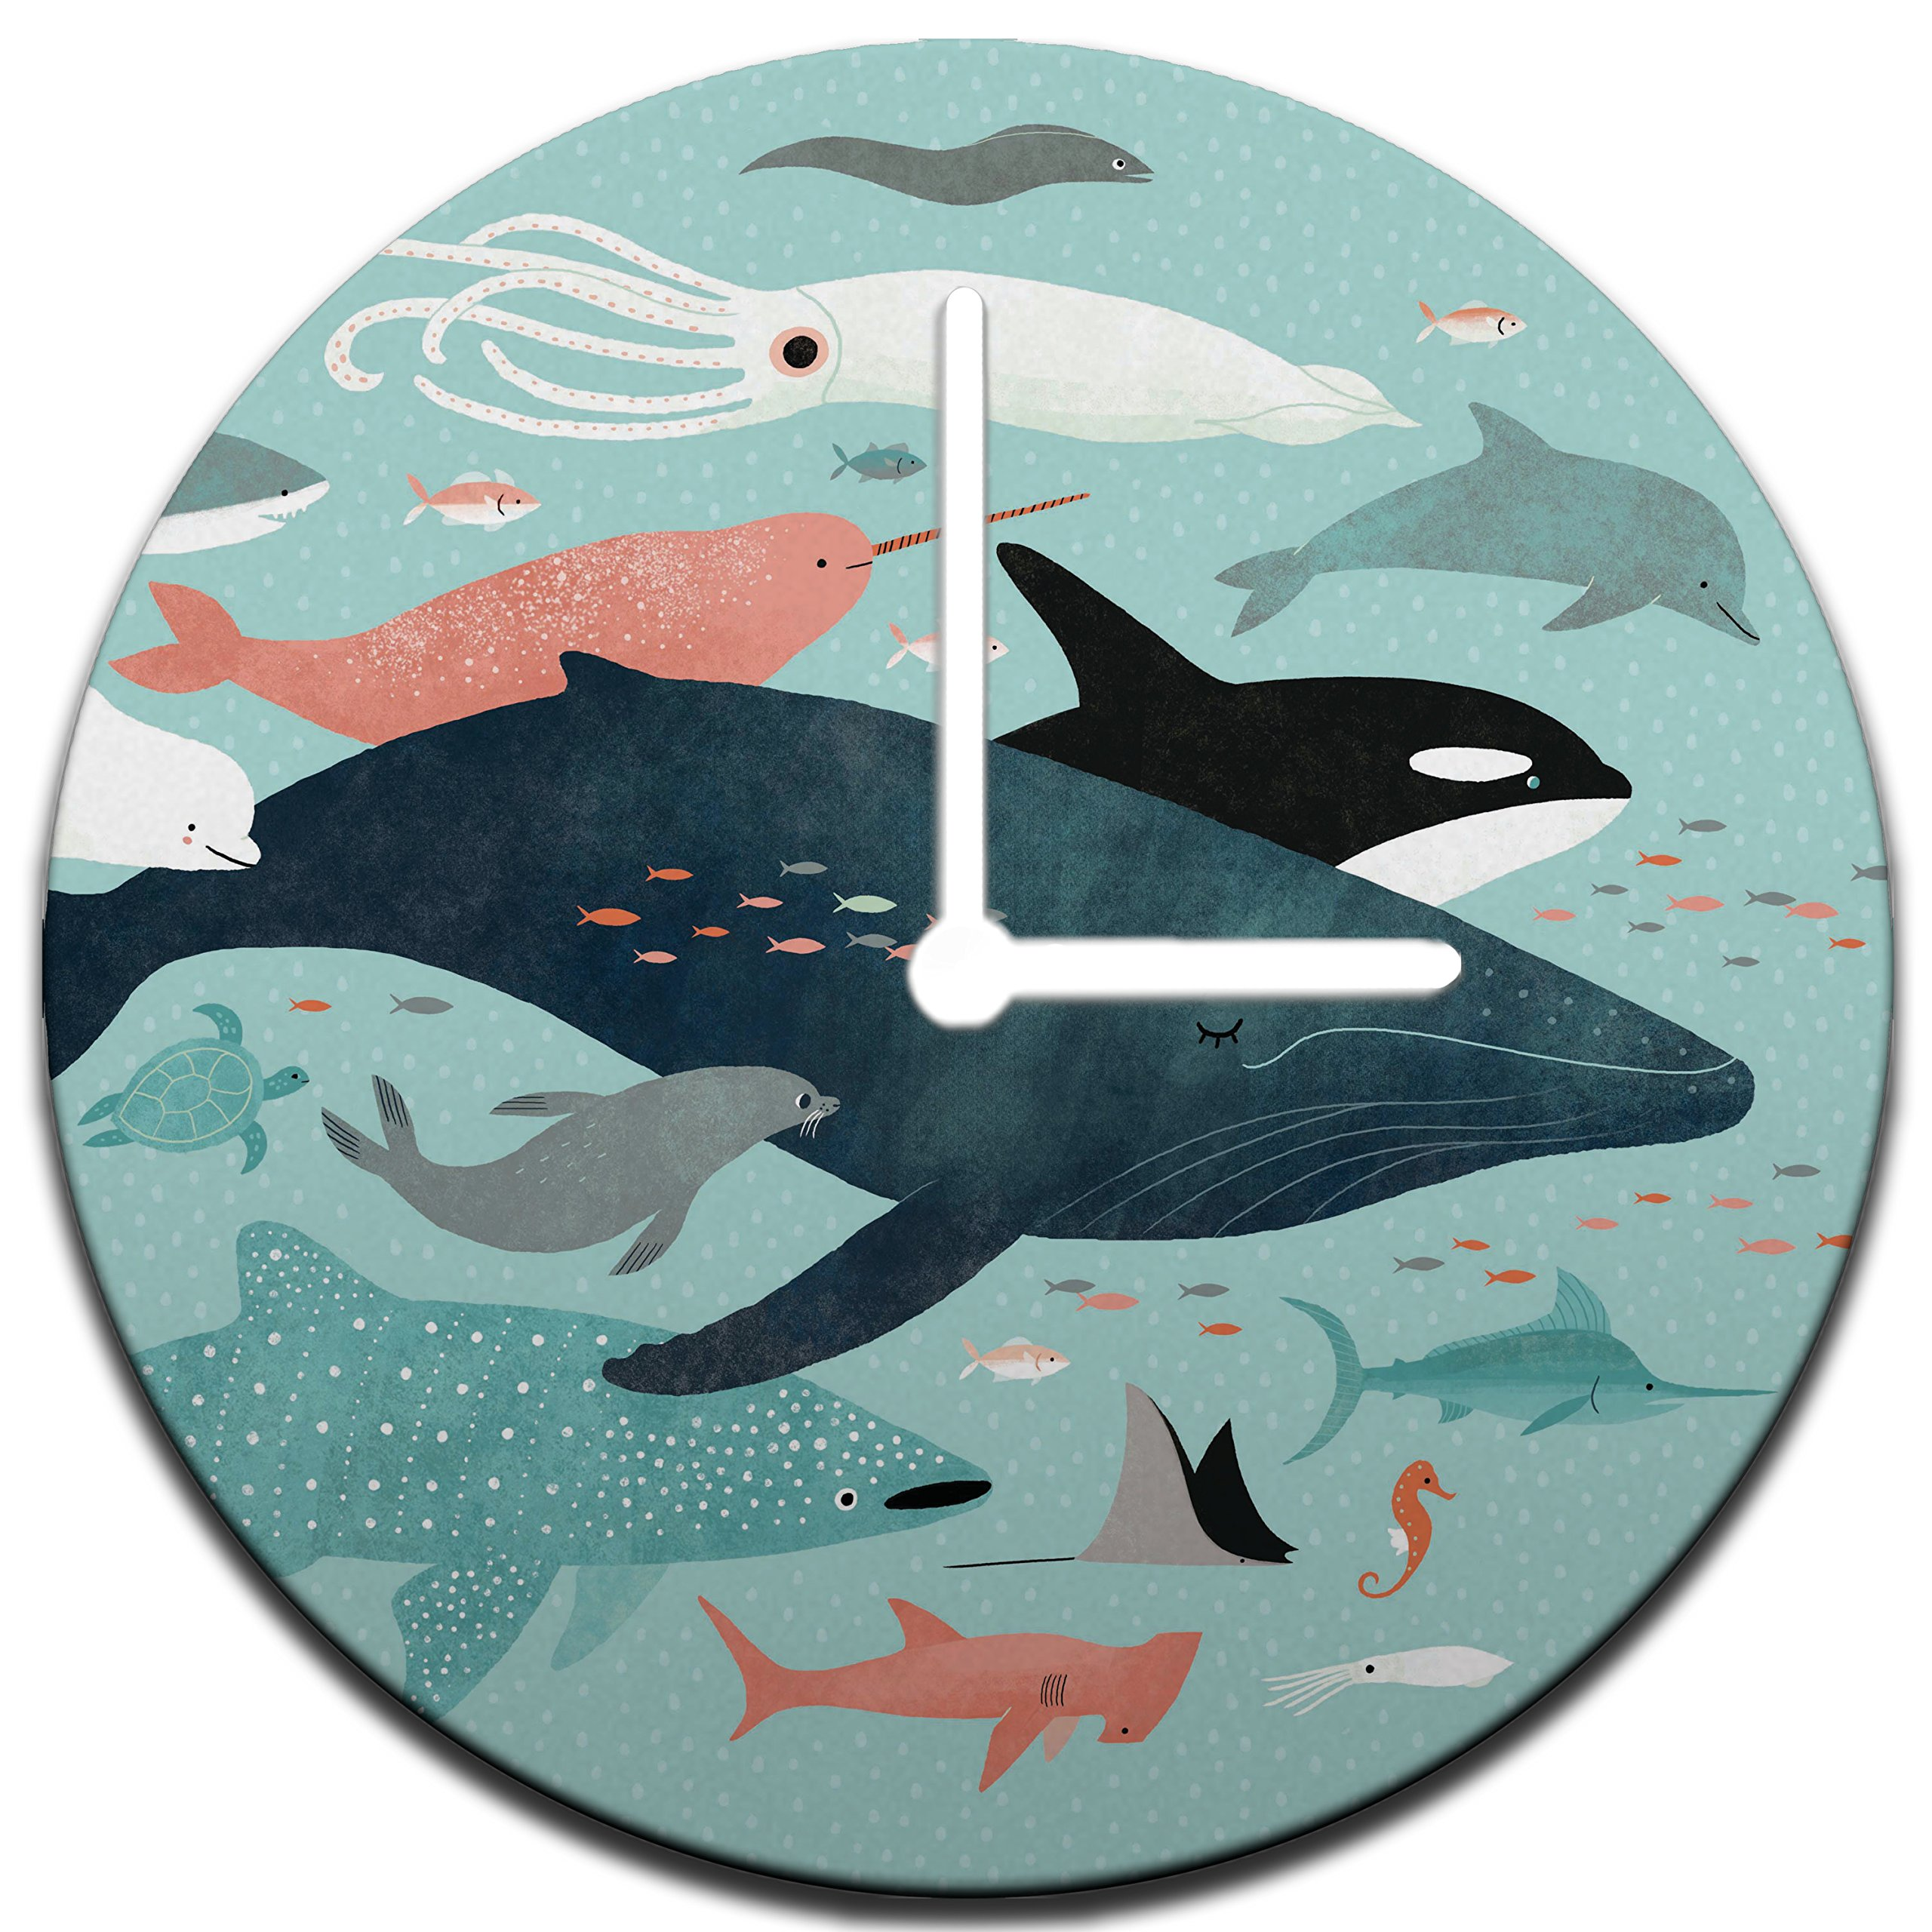 Mouse + Magpie Magical Under the Sea Menagerie Wall Clock Decorative 12'', Quiet, Non-Ticking, Perfect for Kids or Toddler Room, Nursery, Playroom or Office, Great Gift (white)